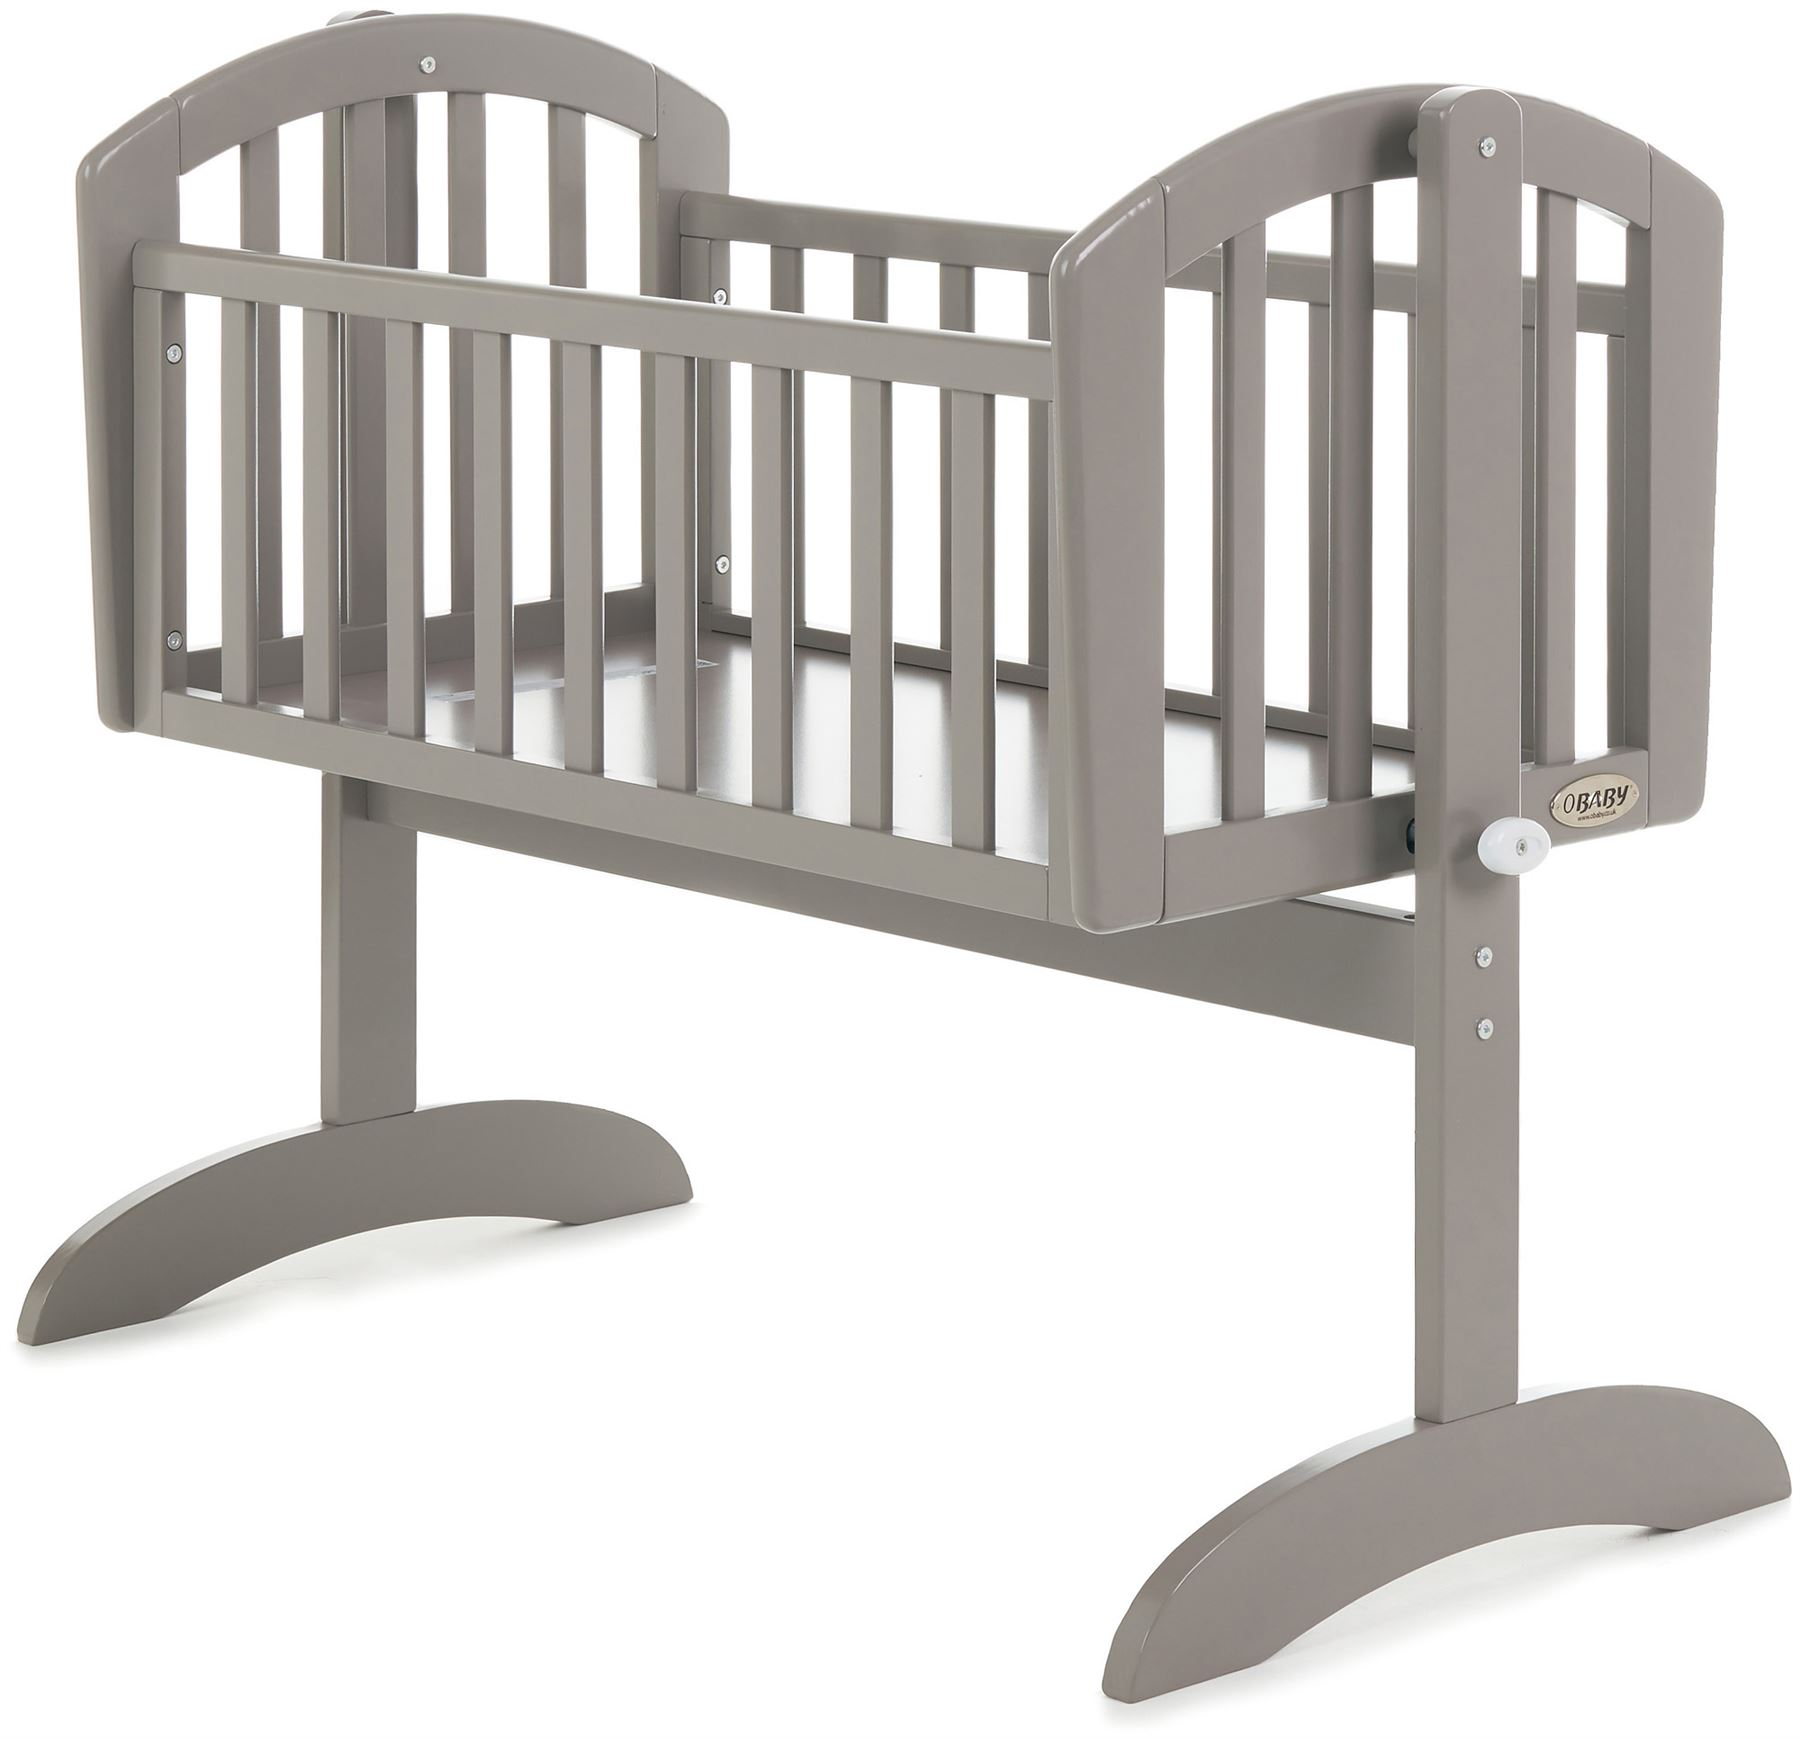 Obaby B Is For Bear Crib Set Nursery Furniture Happy Safari Bnip